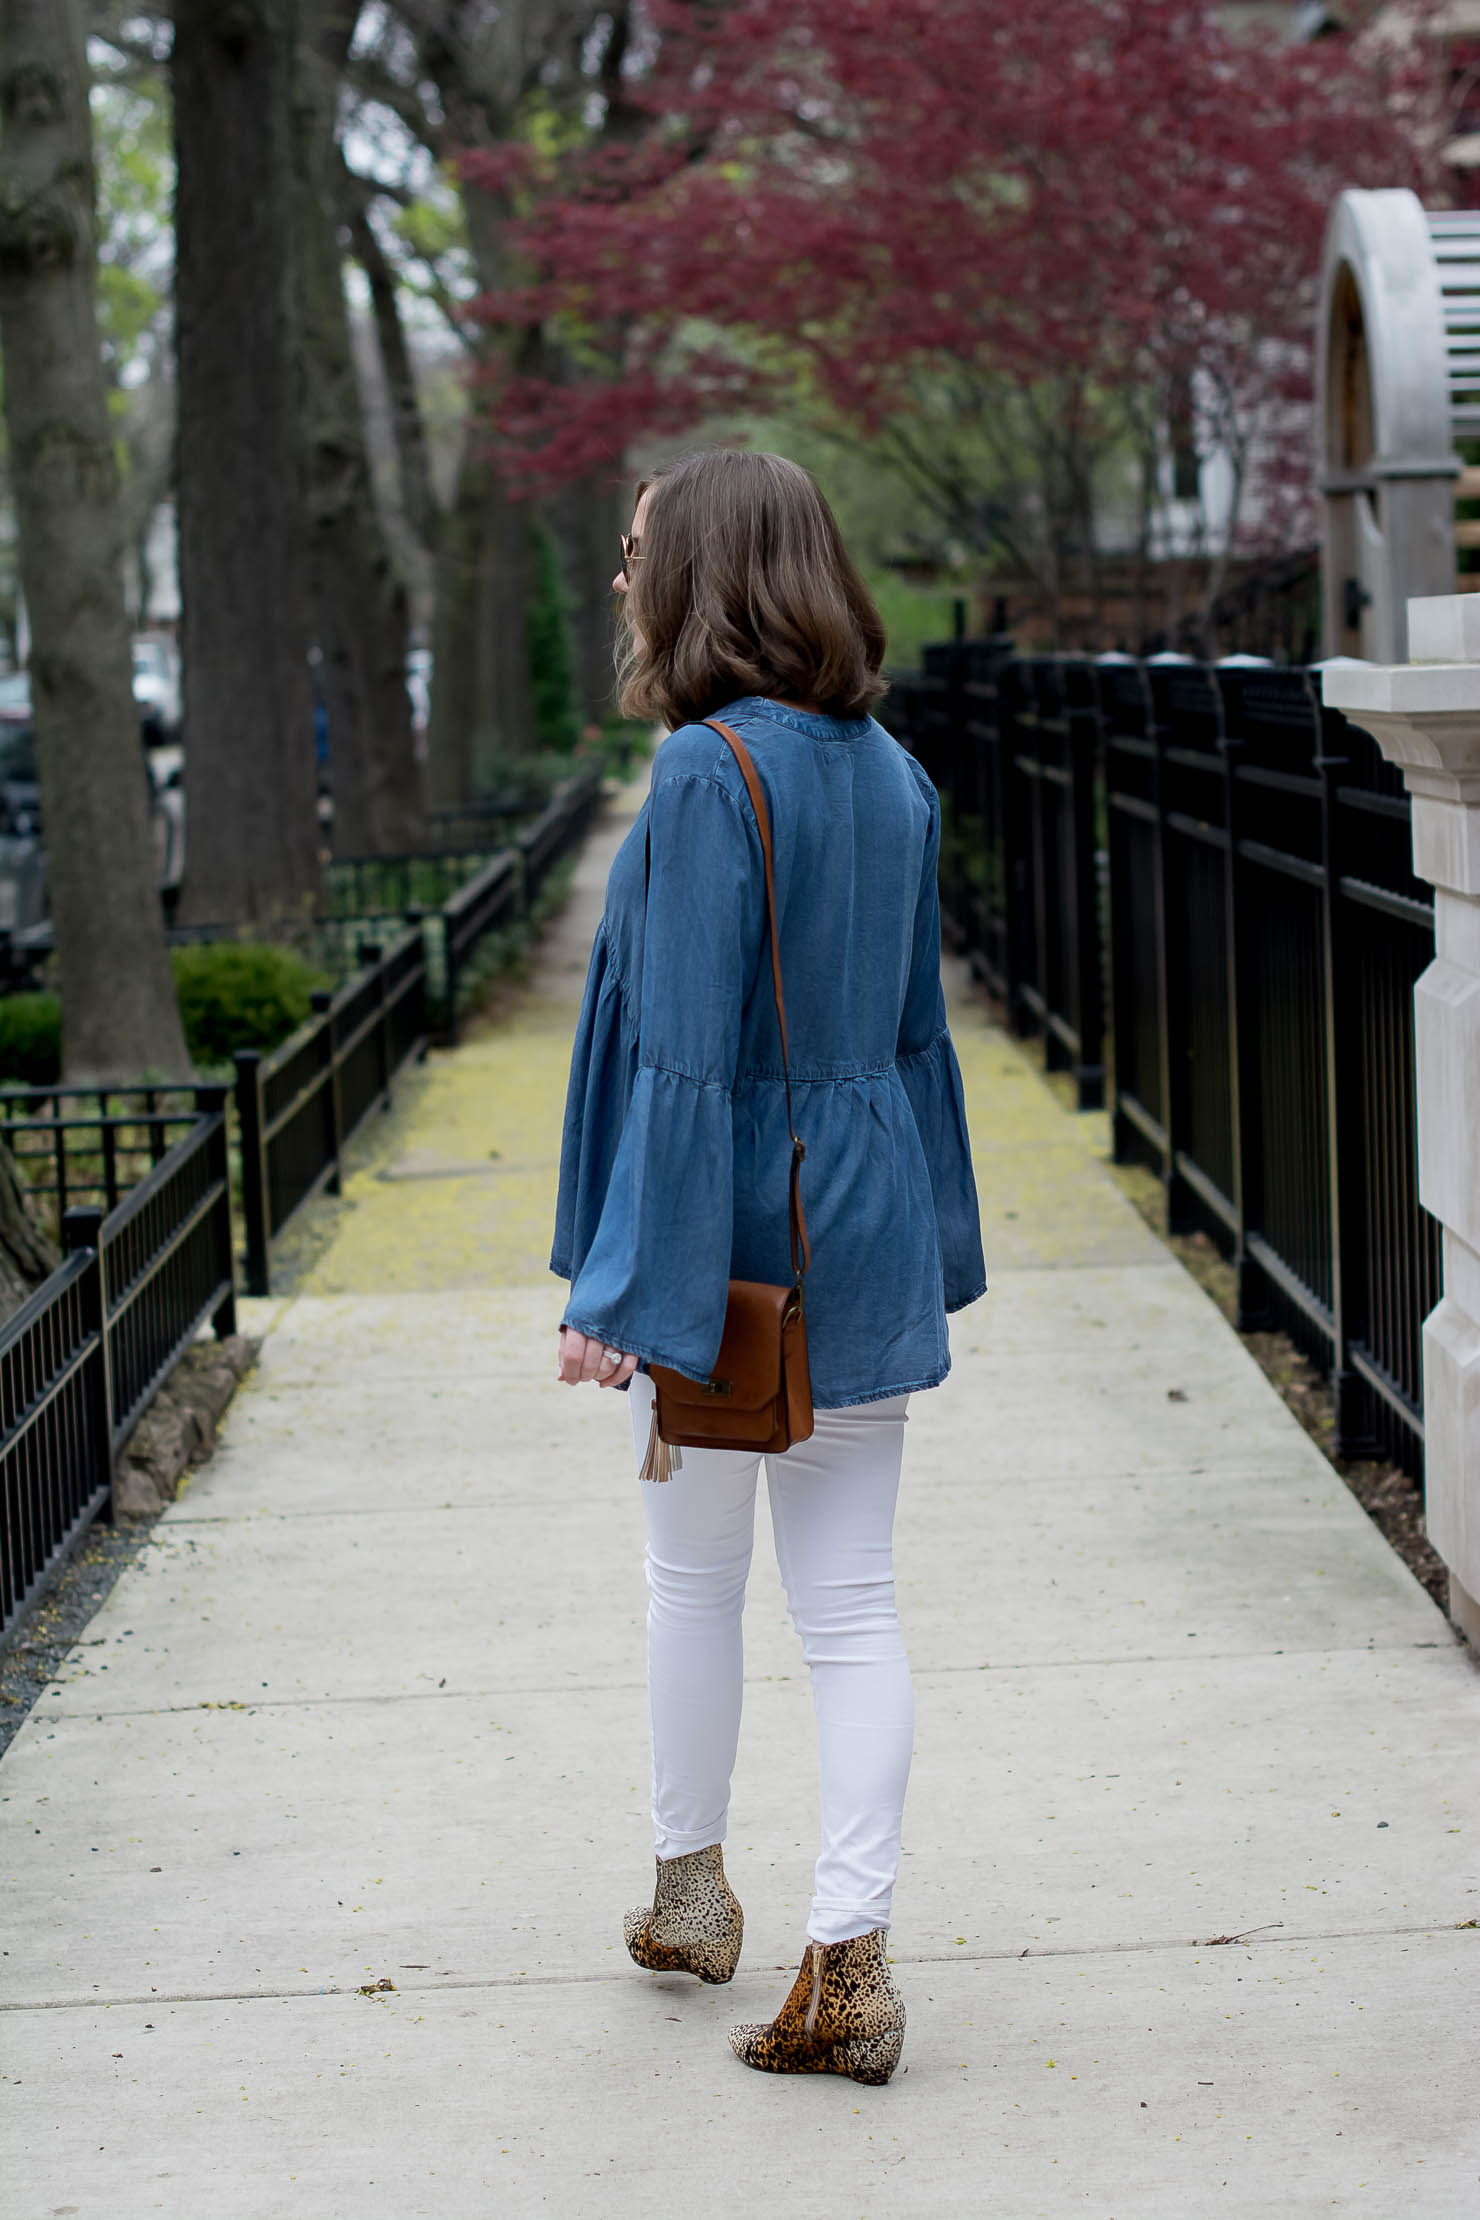 transitioning-white-jeans-for-fall-hm-denim-bell-sleeve-top-matisse-leopard-booties-metallic-bag-tassel-charms-10